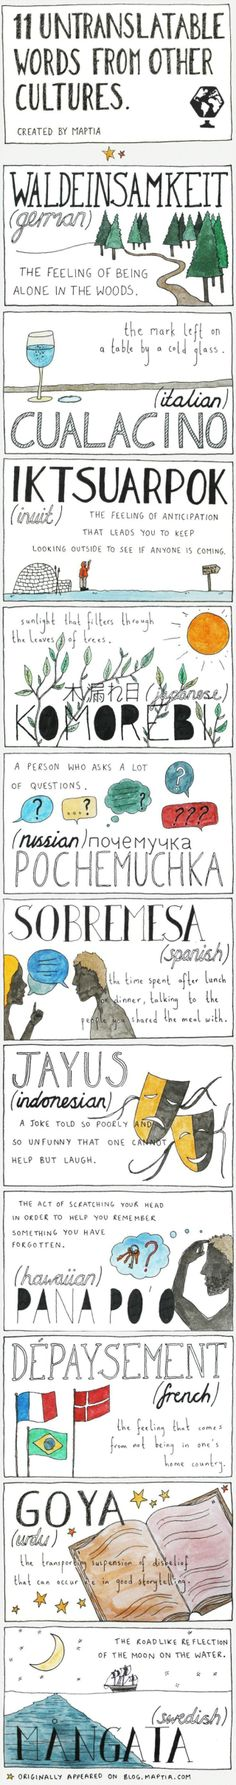 11 untranslatable words from other cultures #infografia #infographic